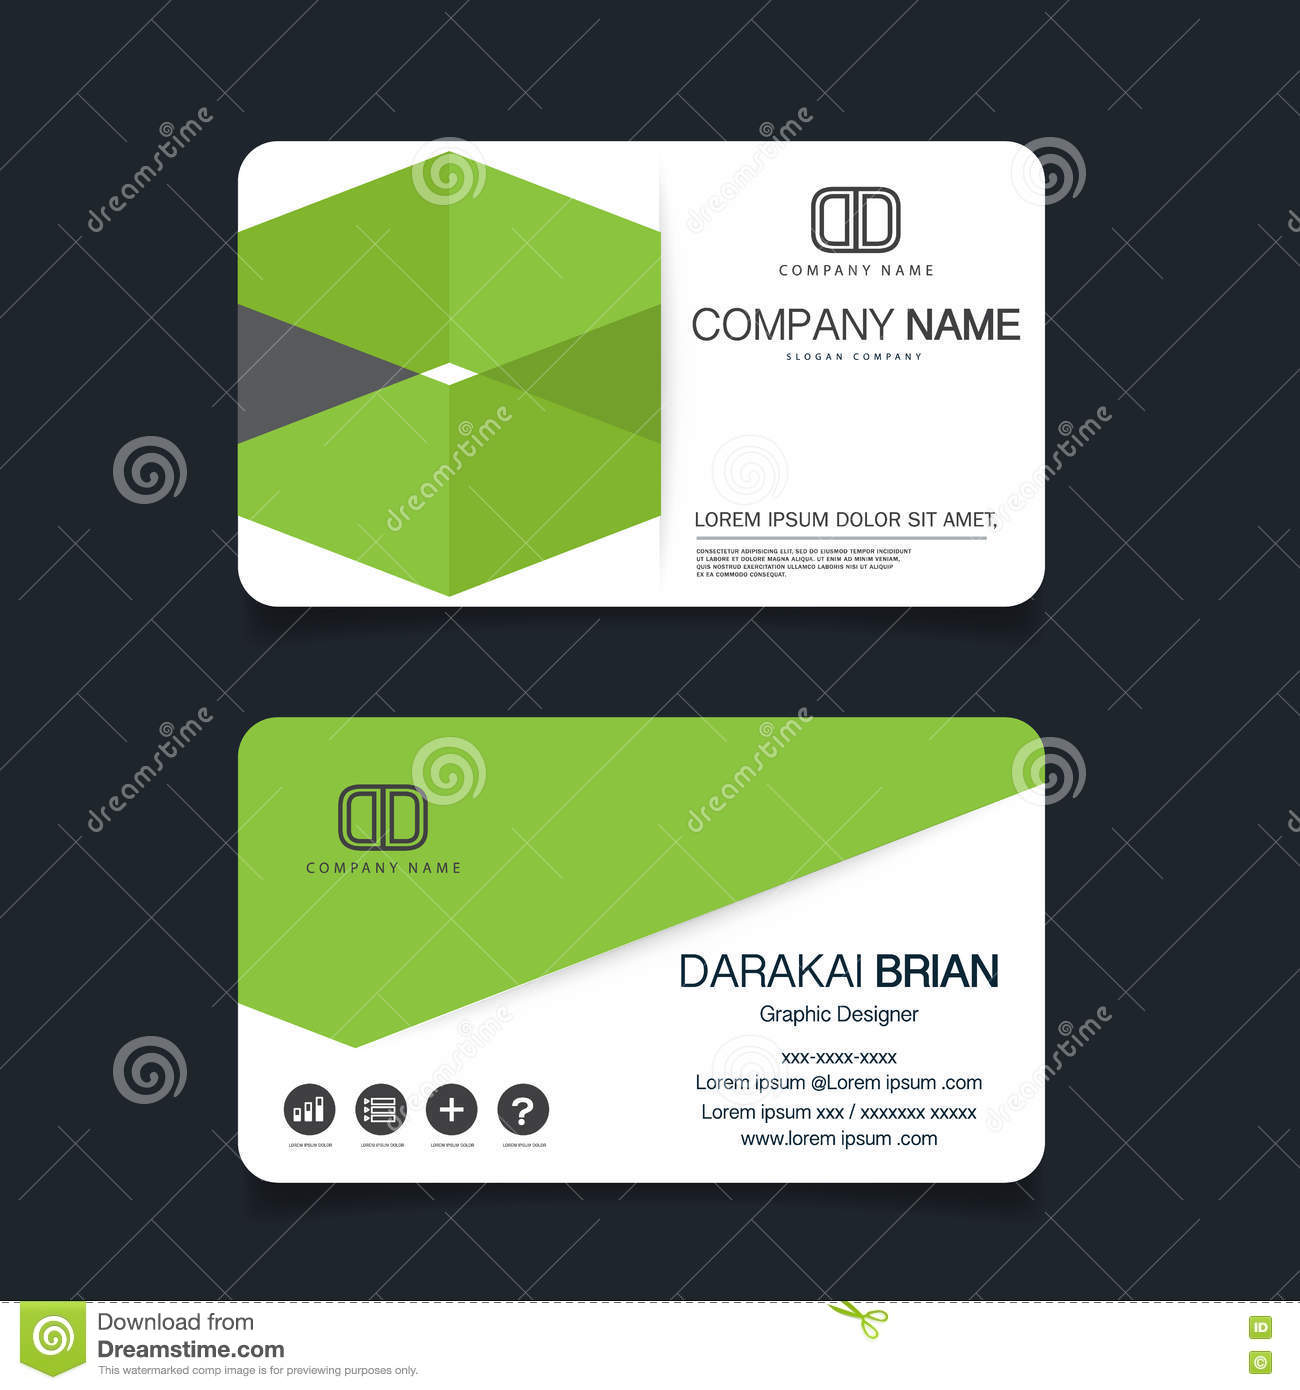 Name card modern simple business card template vector illustration business card template name card modern simple business card template vector illustration wajeb Images